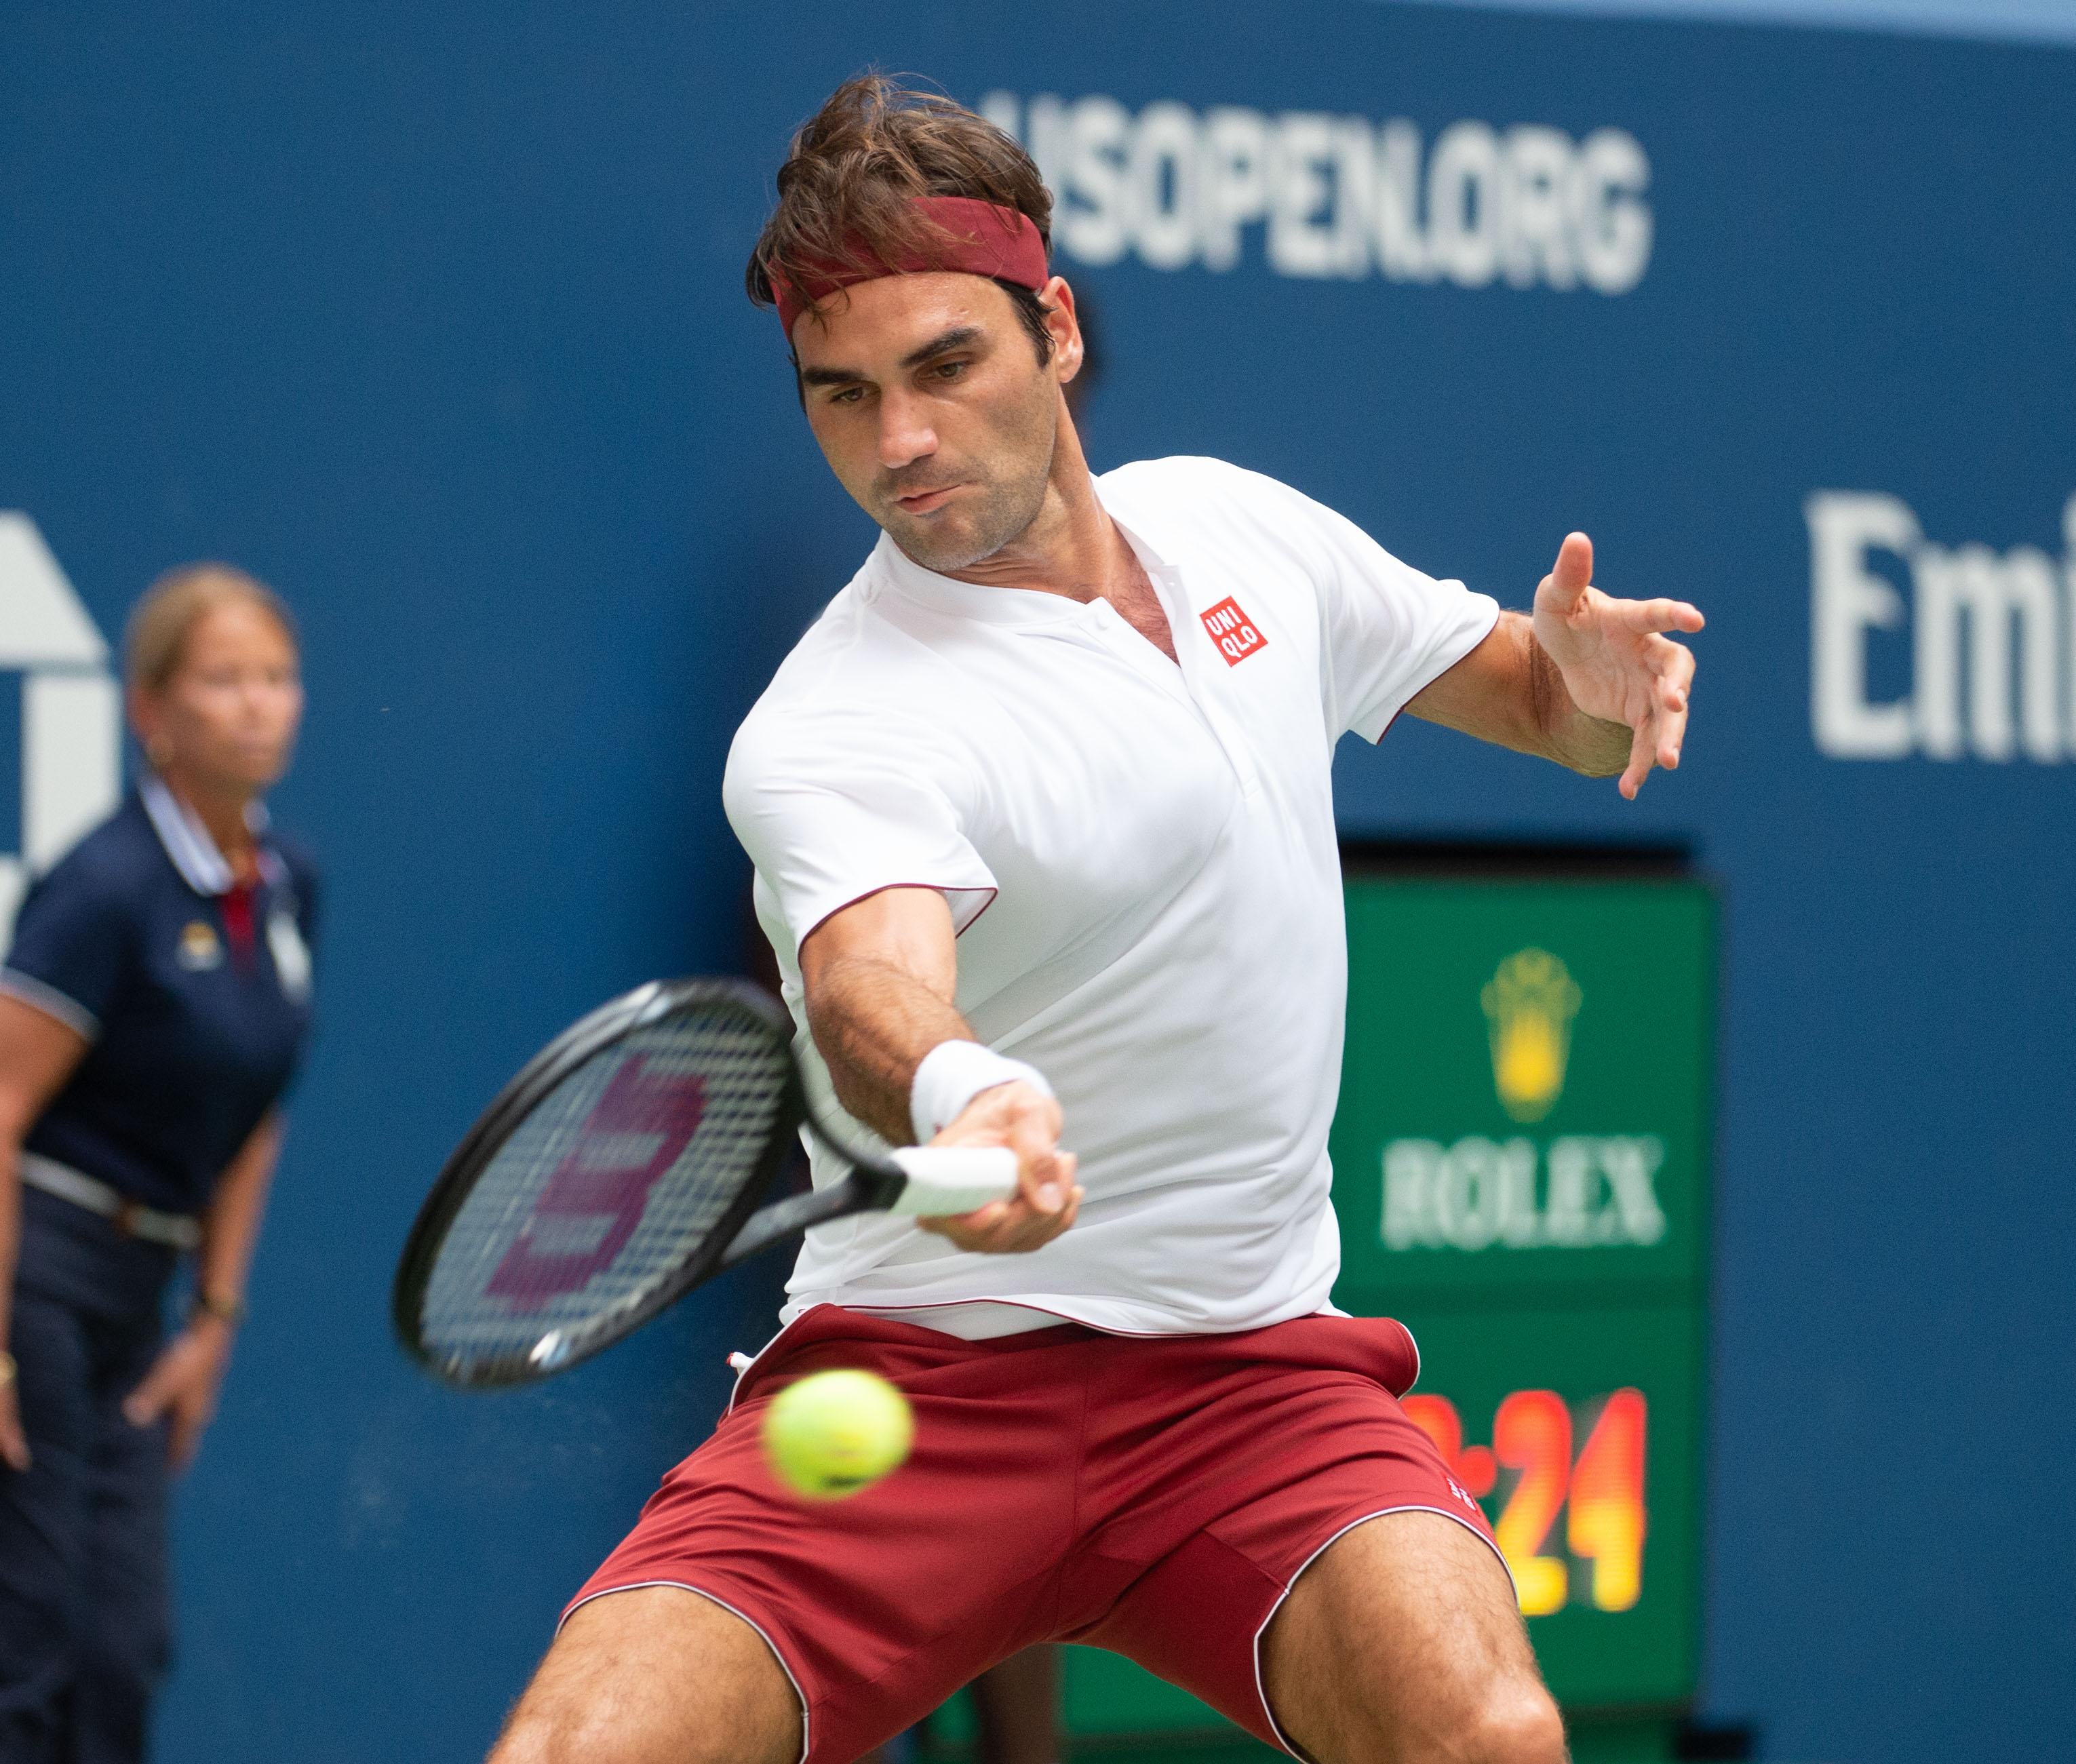 Federer beat Paire 7-5 6-4 6-4 to set up a third-round match with Australian Nick Kyrgios